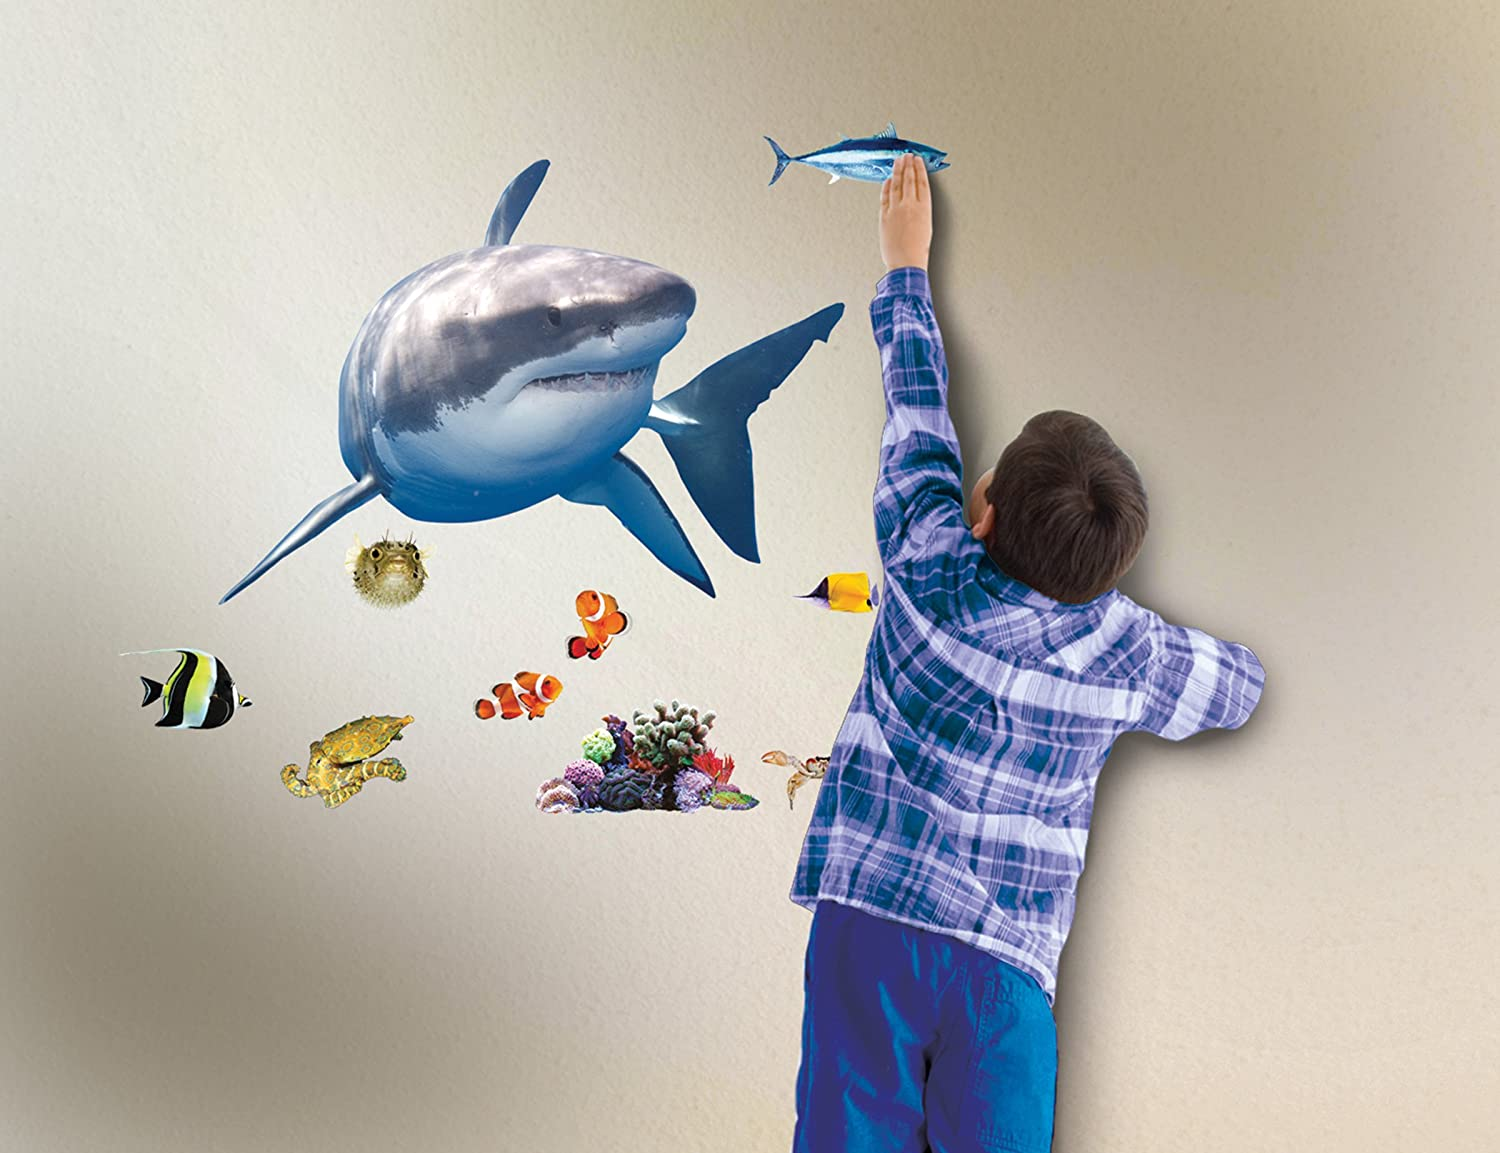 Amazon.com: In My Room Wild Walls Shark Encounter Wall Decal Light U0026 Sound  Show Room Décor: Toys U0026 Games